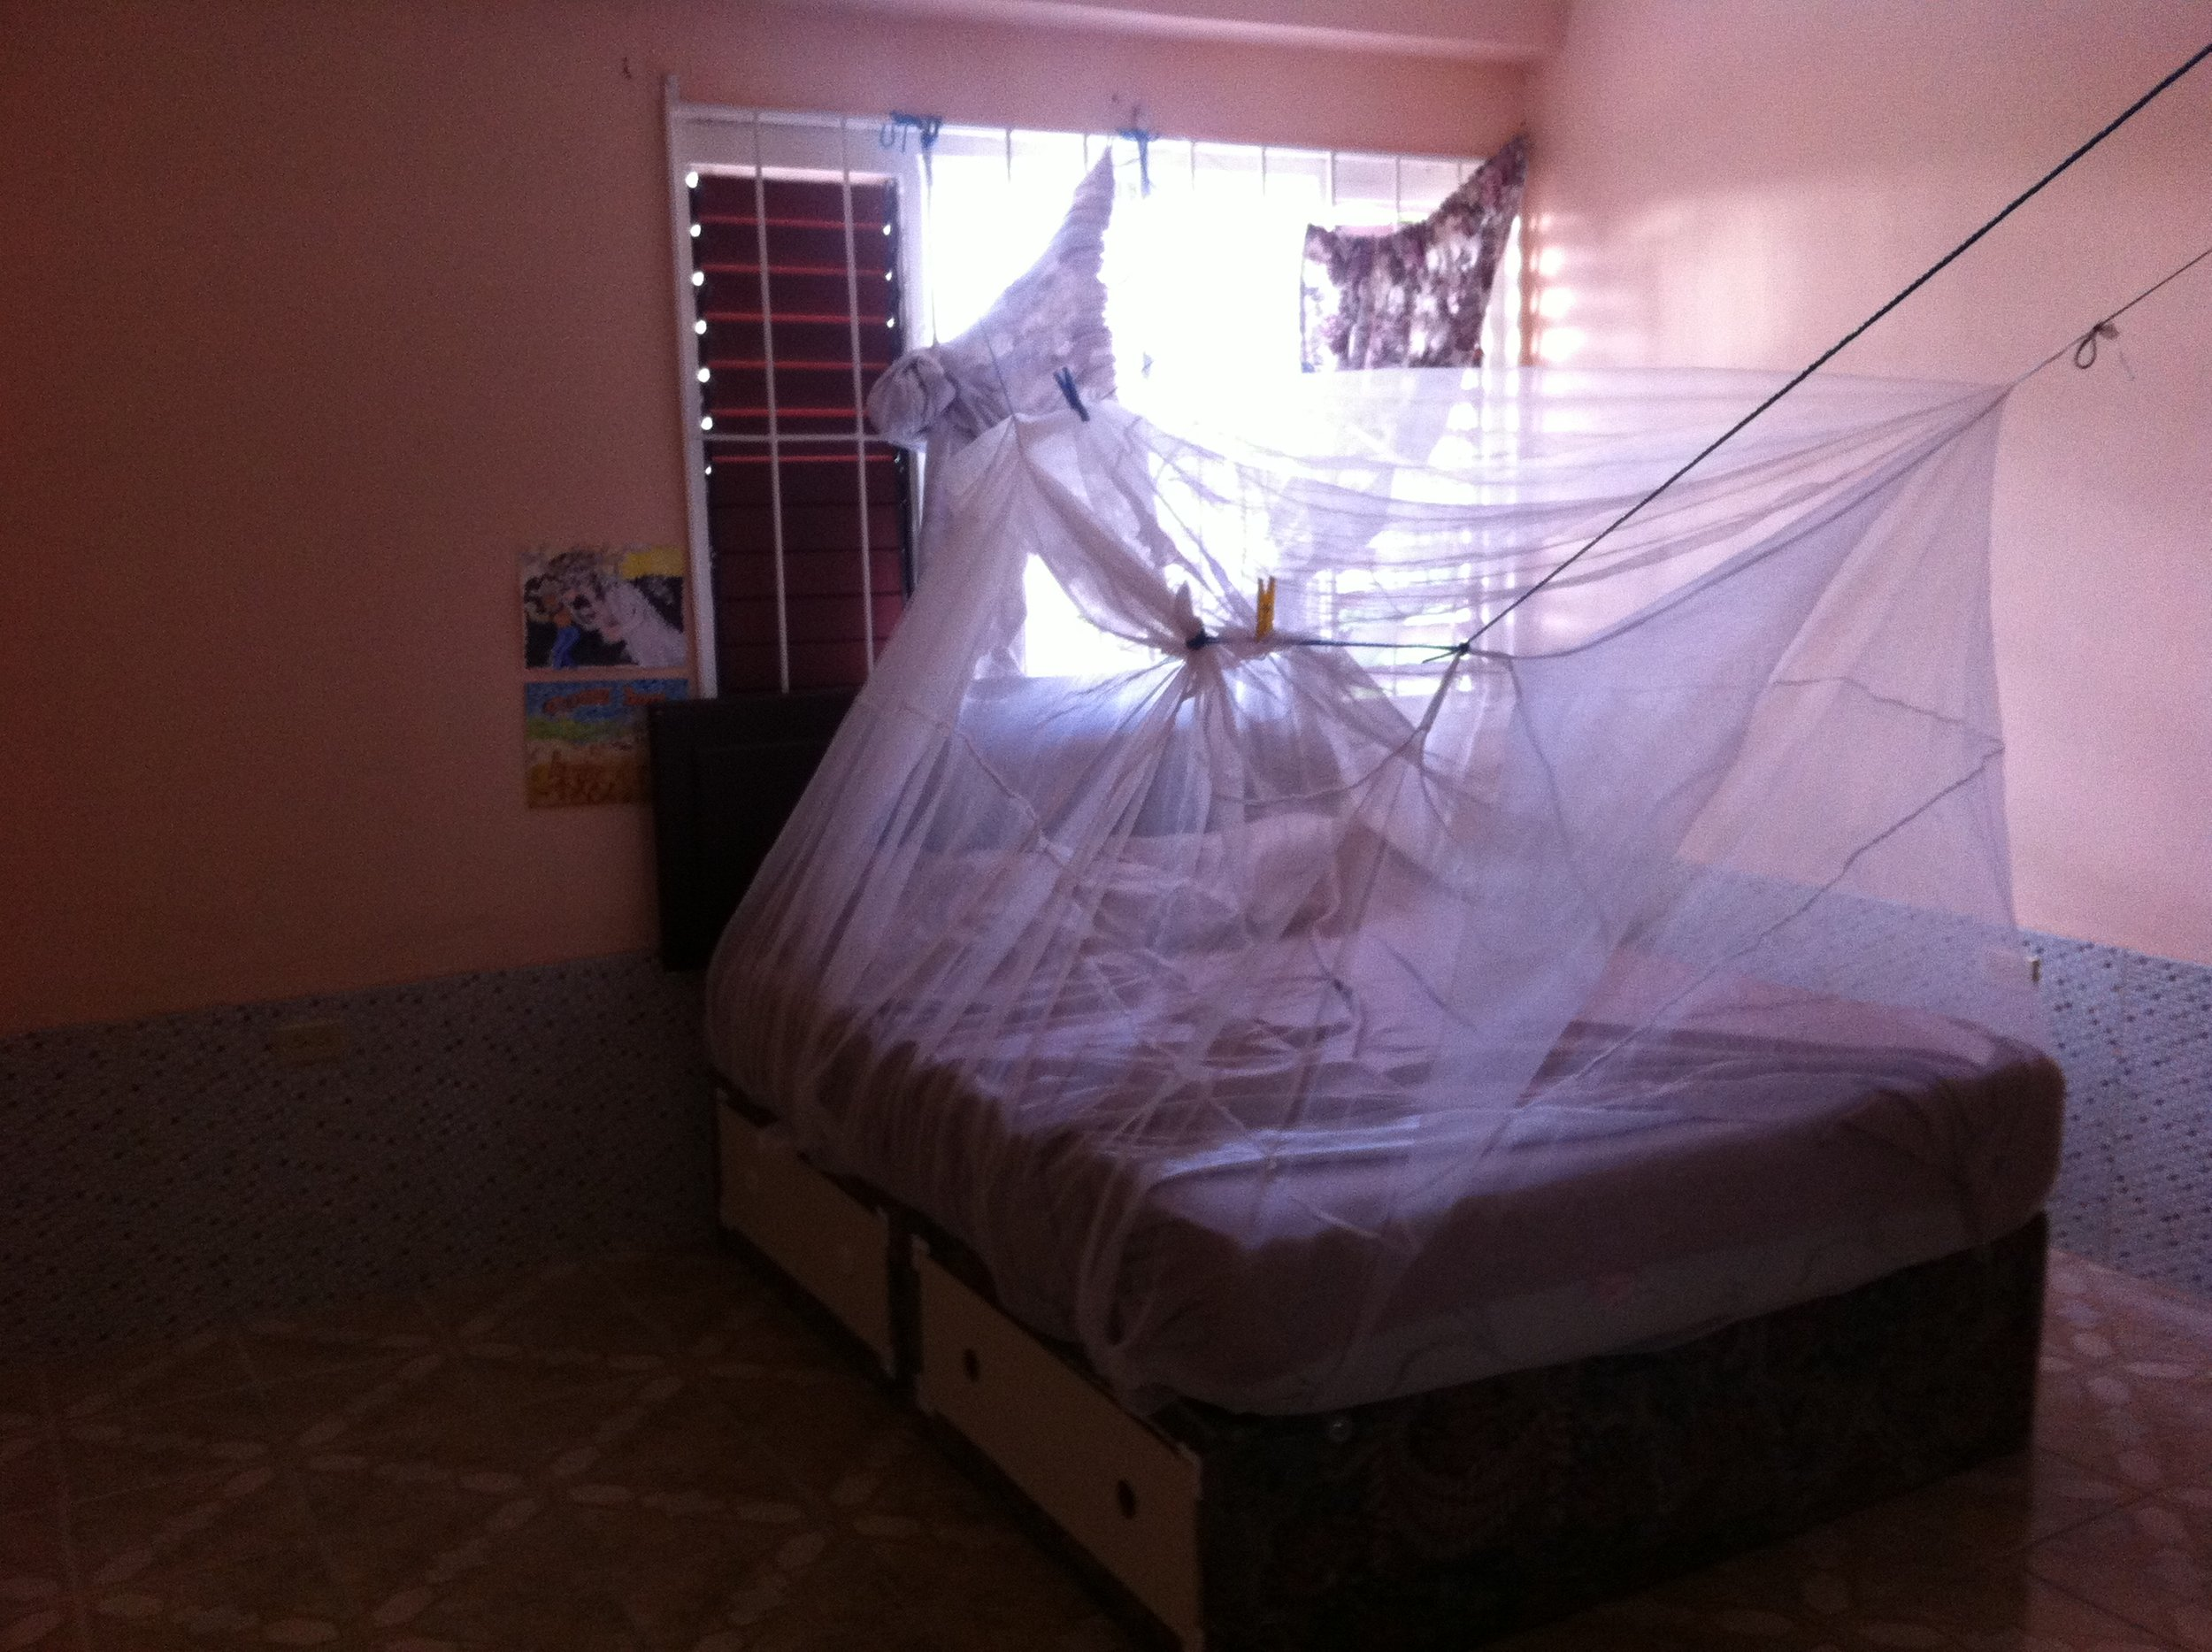 My windows aren't screened so I use a mosquito net.